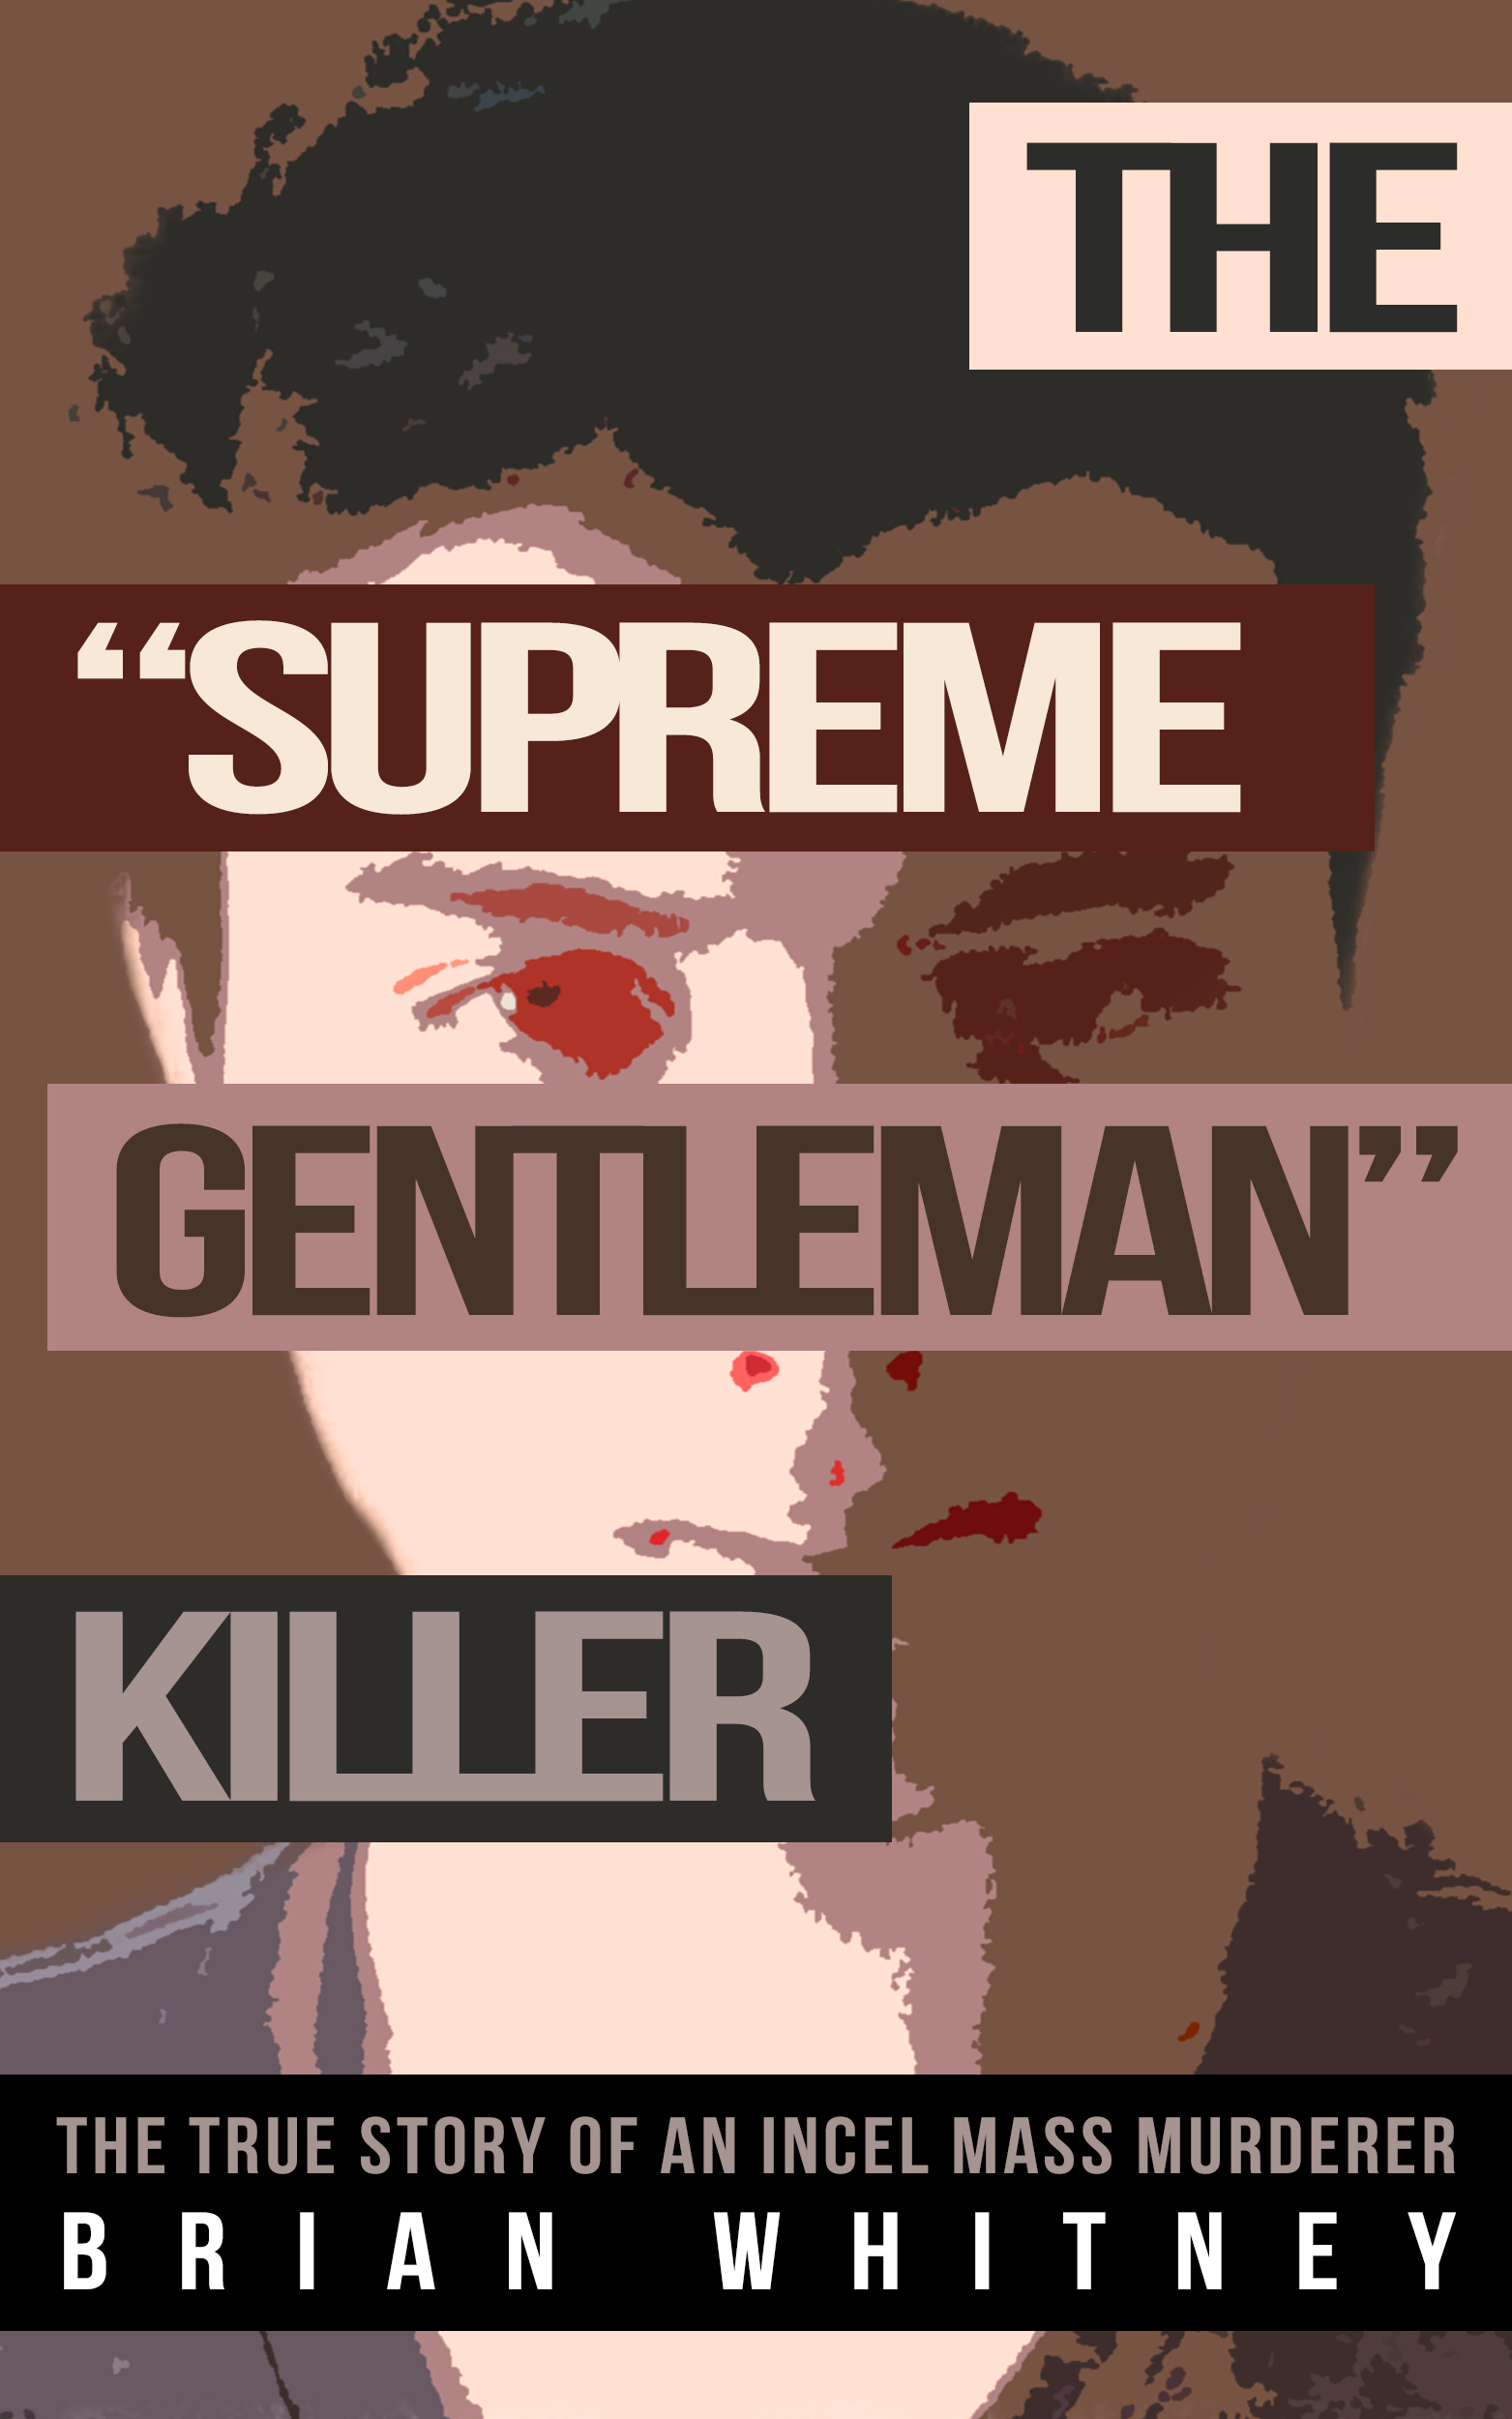 The Supreme Gentleman Killer